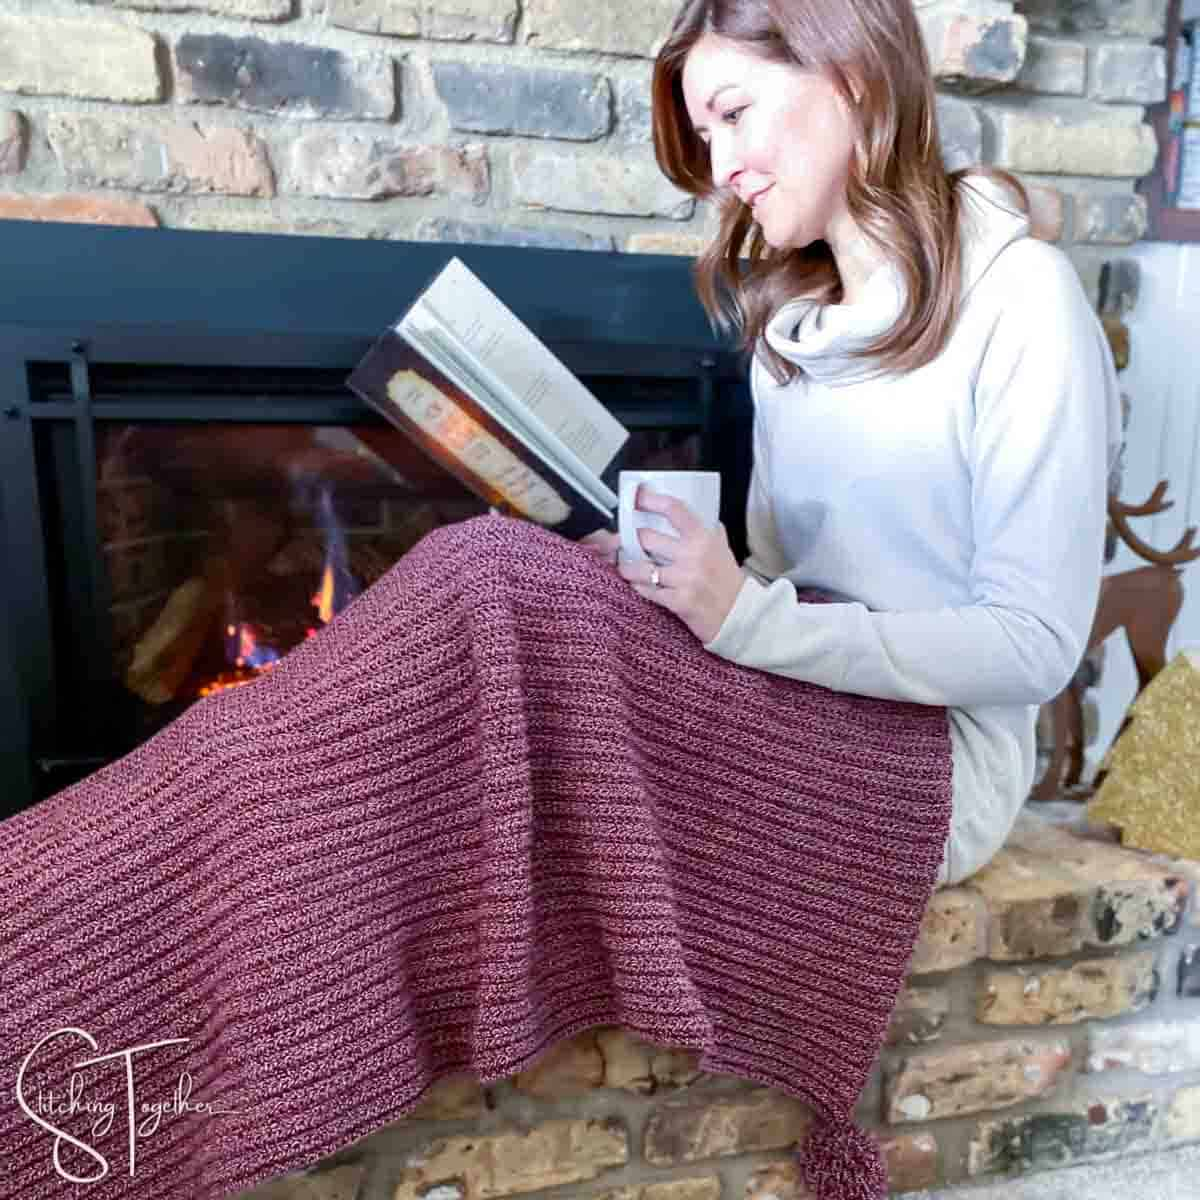 lady draped in a red and white crochet christmas blanket while reading in front of a fireplace